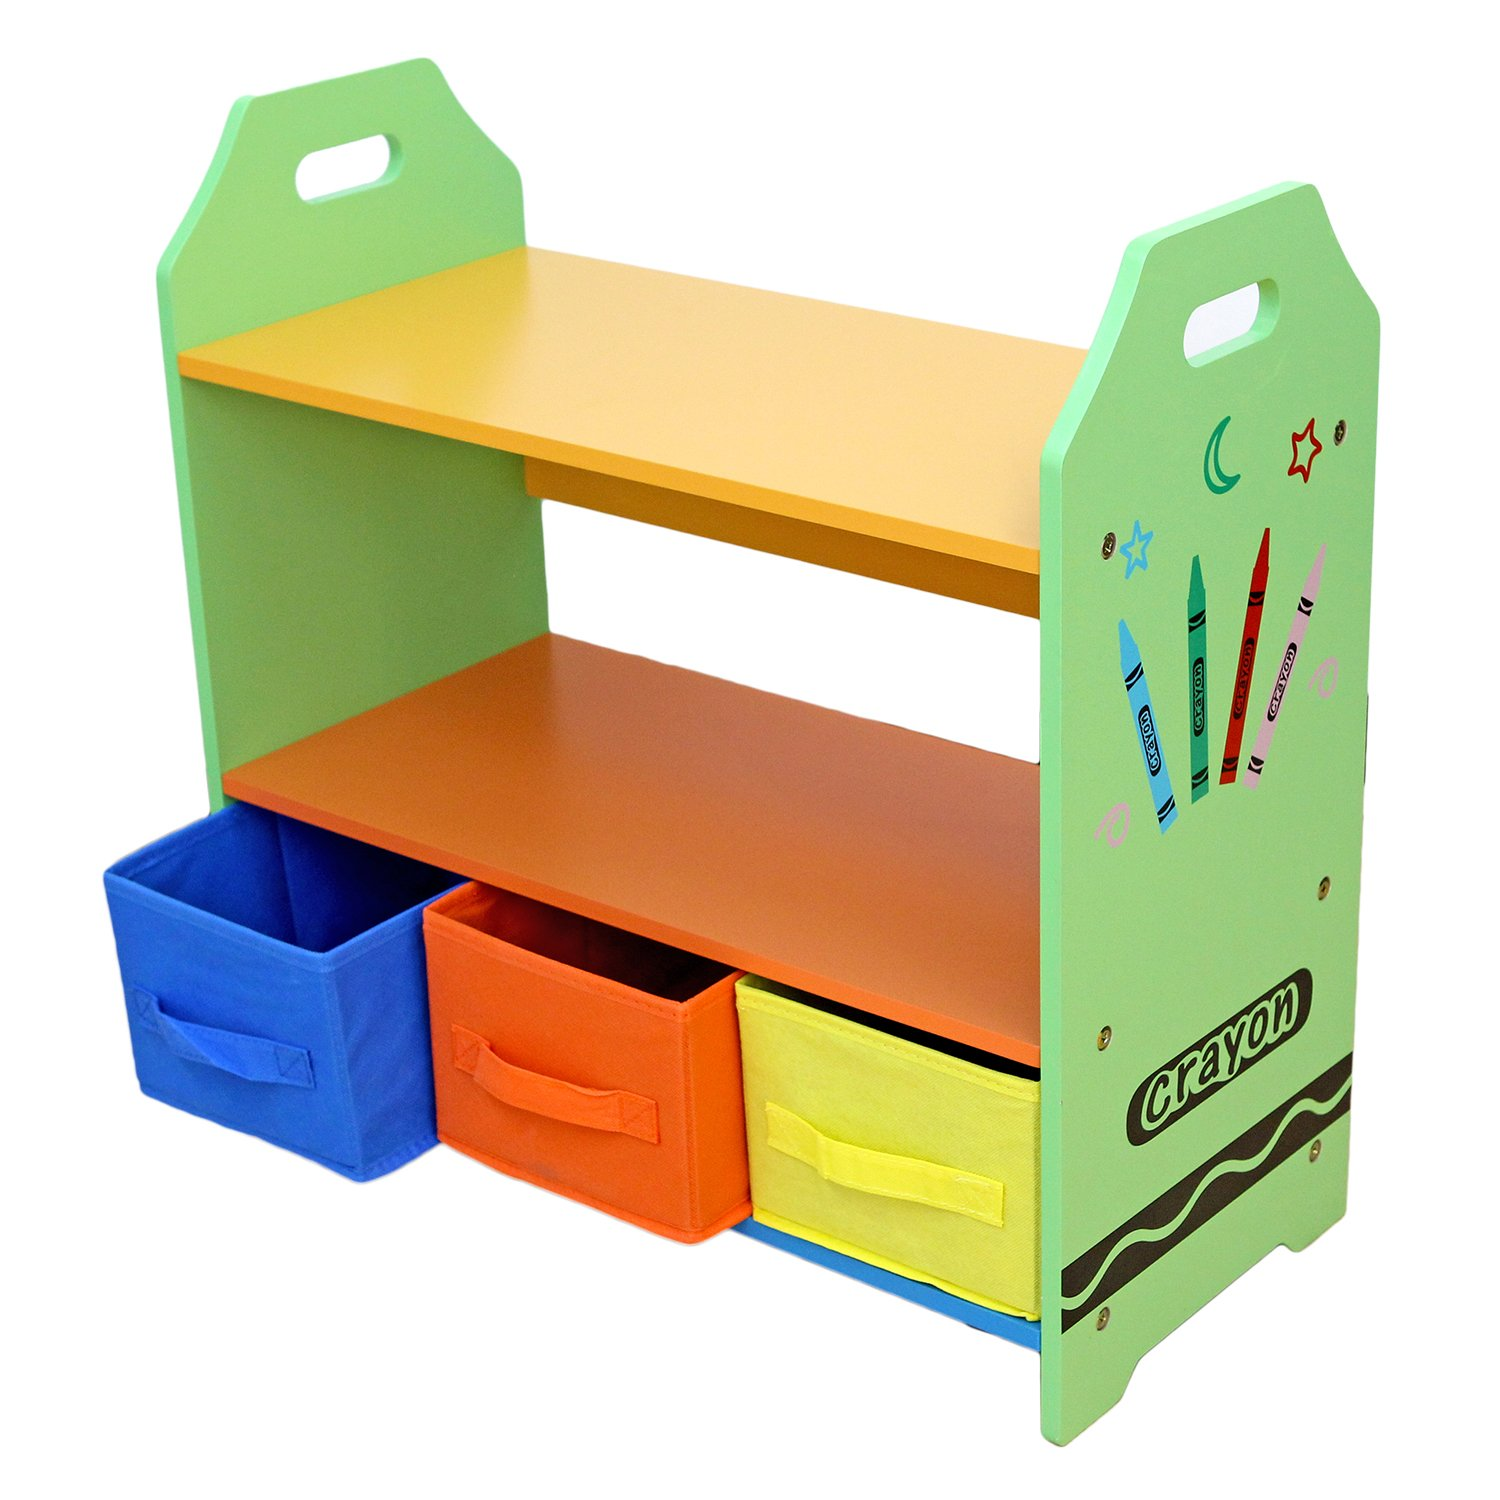 Kiddi Style Children Sized Wooden Shelves With Three Storage Boxes (crayon  Themed)